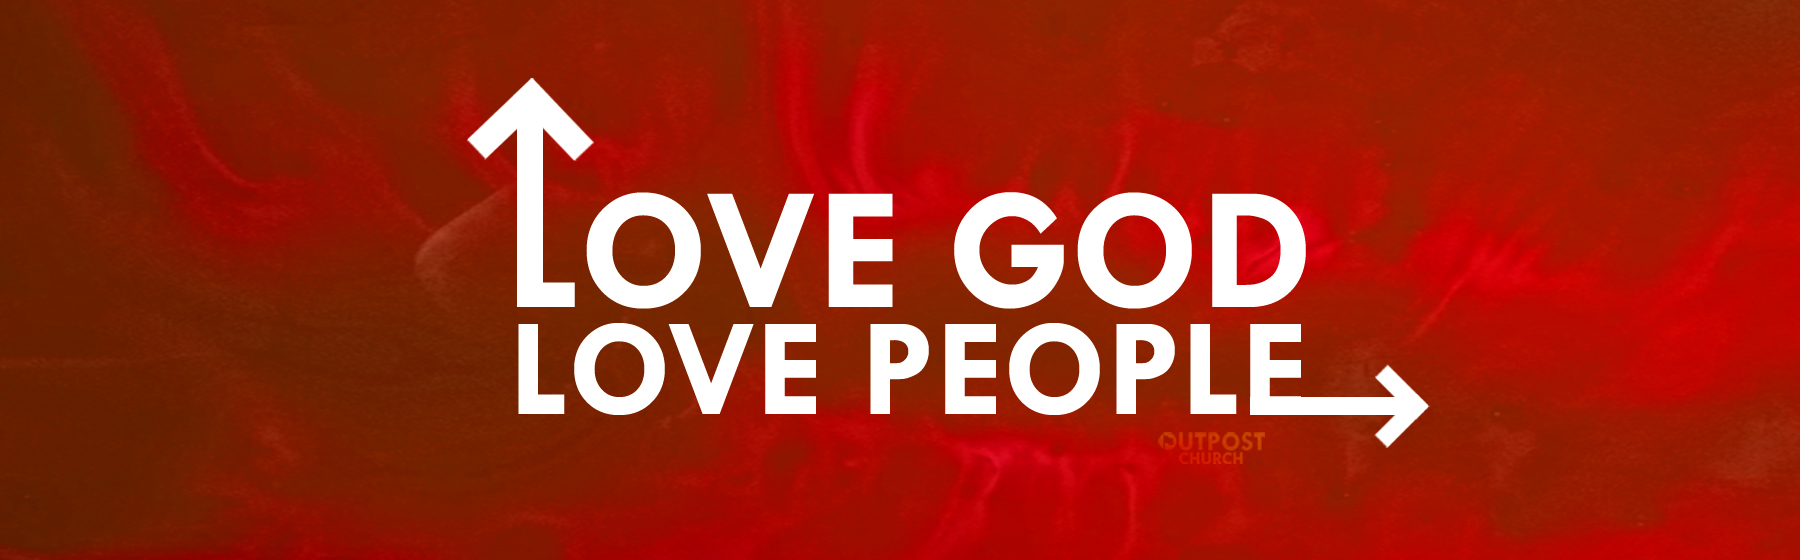 Love God Love People Images & Pictures - Becuo